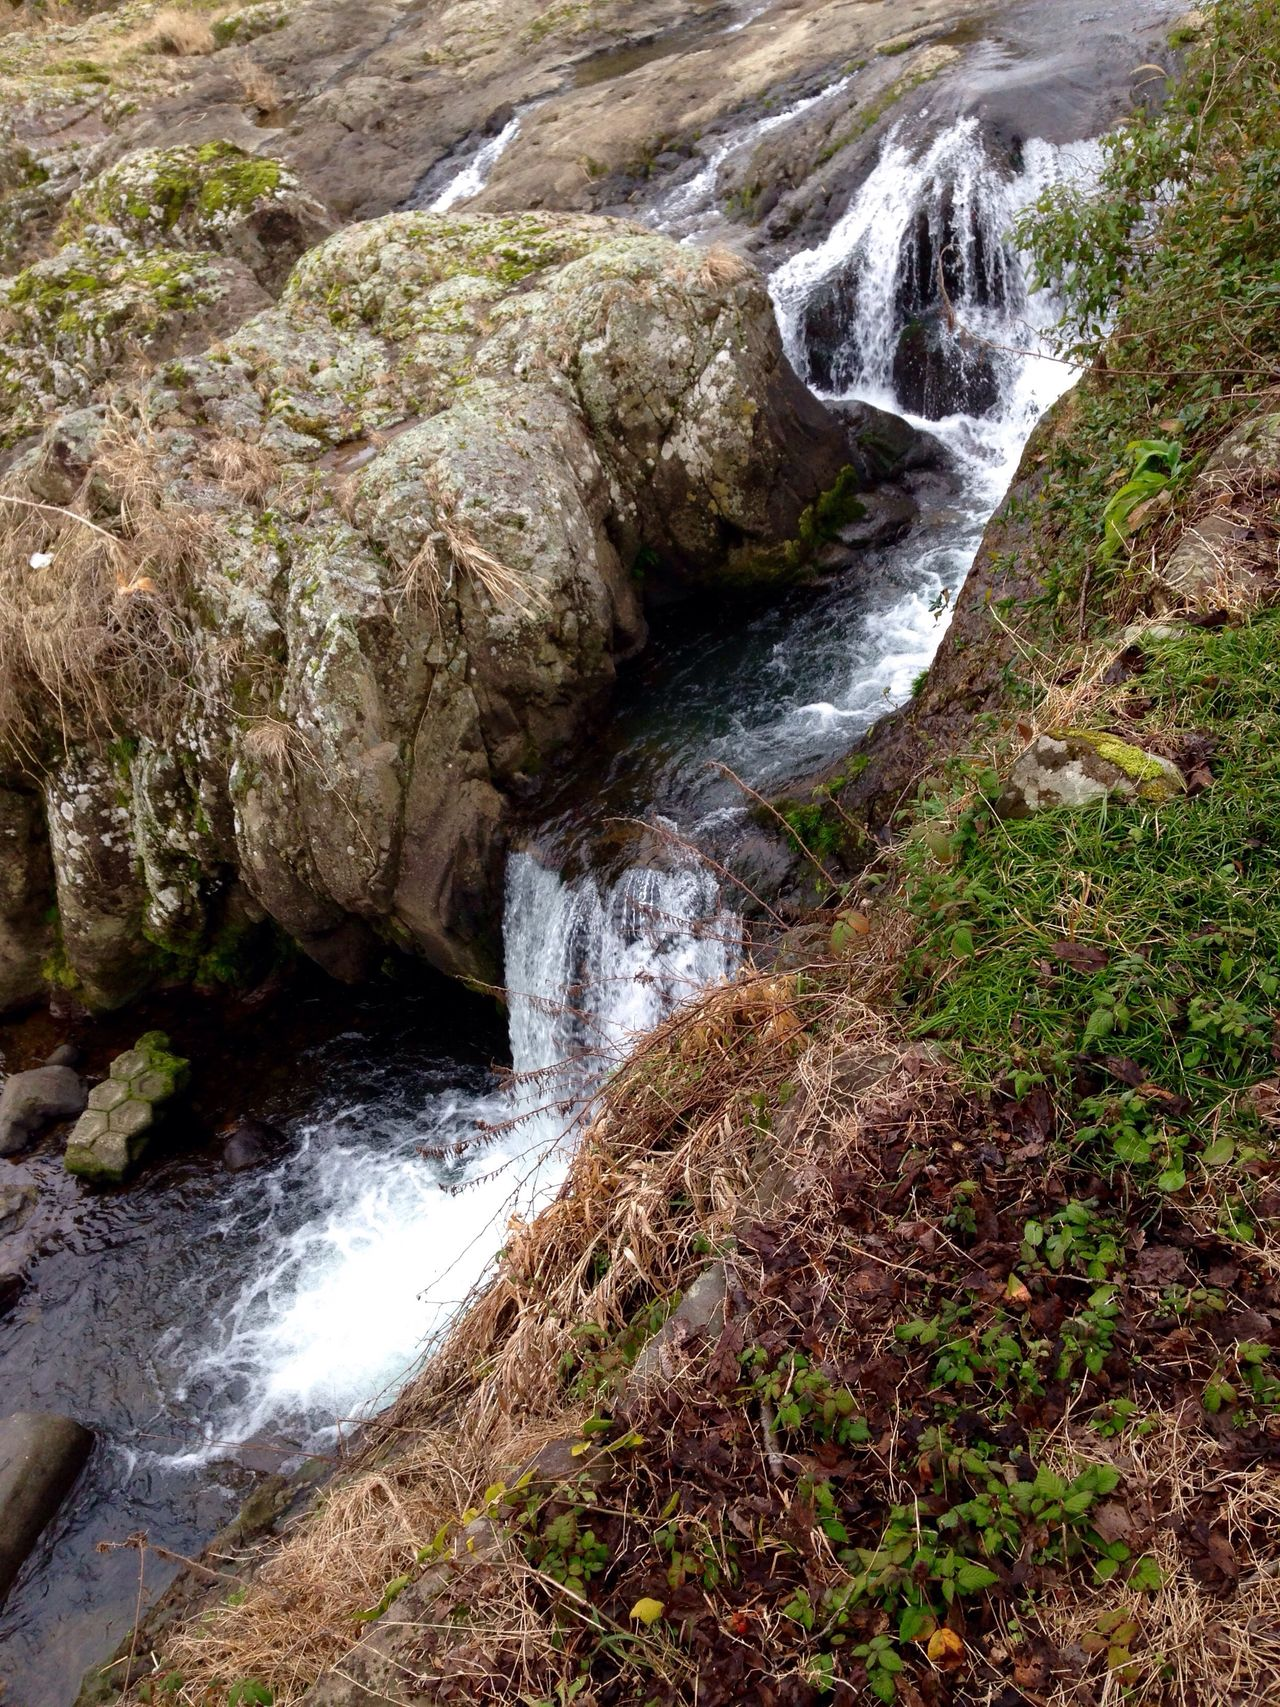 Mywaterfallcollection Wasserfall Creekside Trail Water Rock - Object Nature No People Beauty In Nature Outdoors River Scenics Waterfall Day Stream - Flowing Water (null)KYUSHU Japan Photography